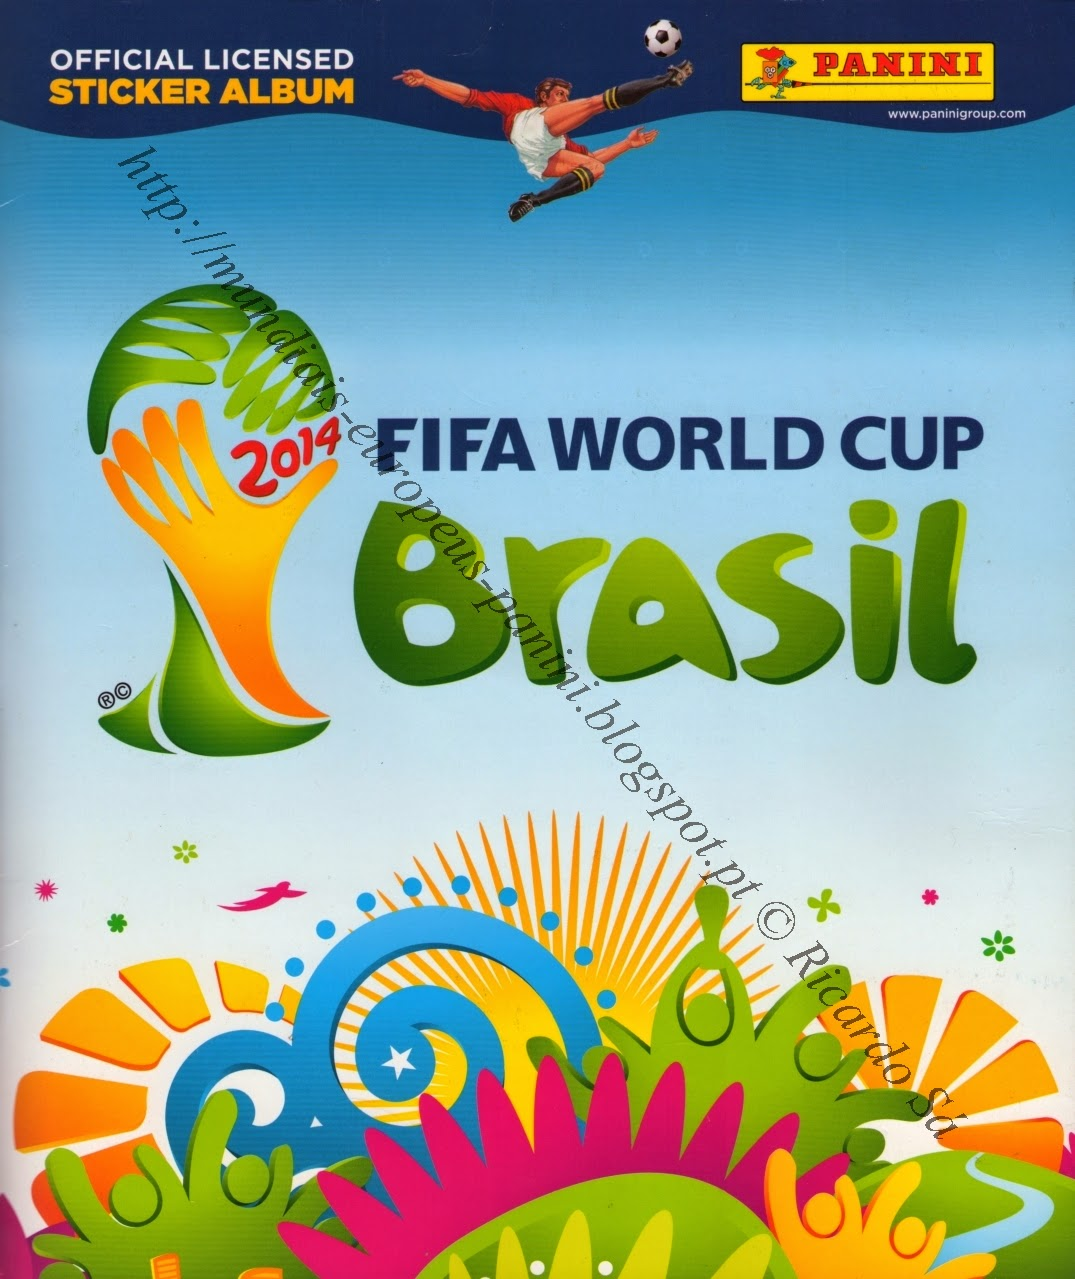 http://mundiais-europeus-panini.blogspot.pt/search/label/2014%20-%20Brasil